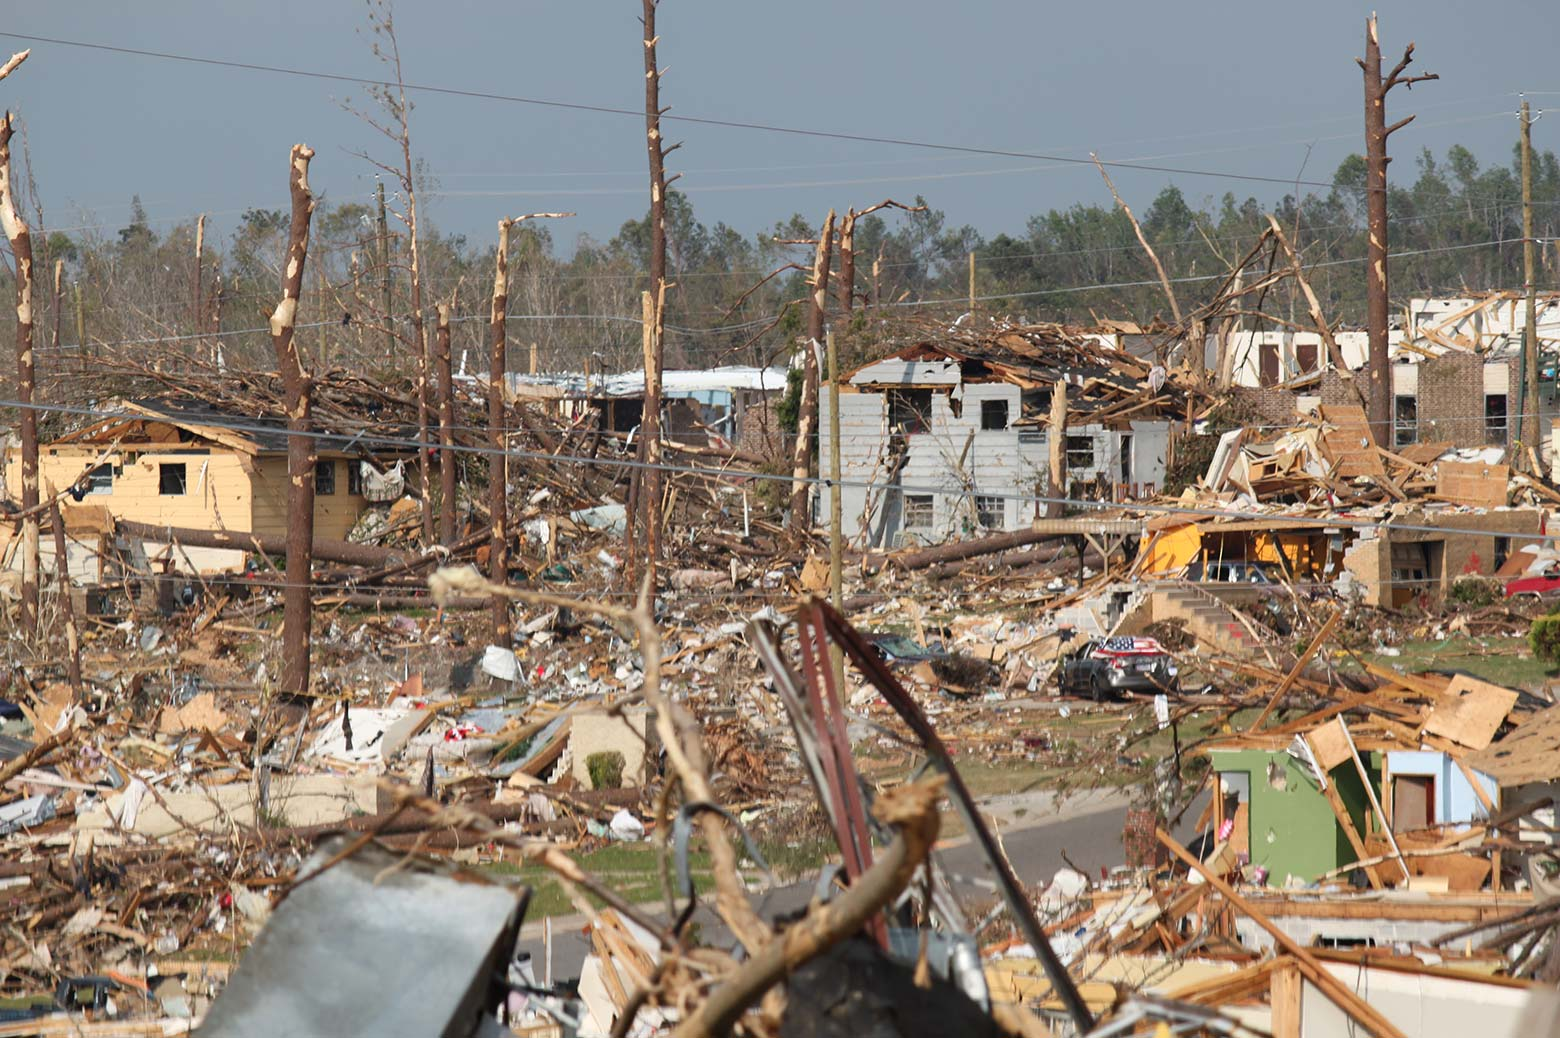 A town destroyed by a natural disaster